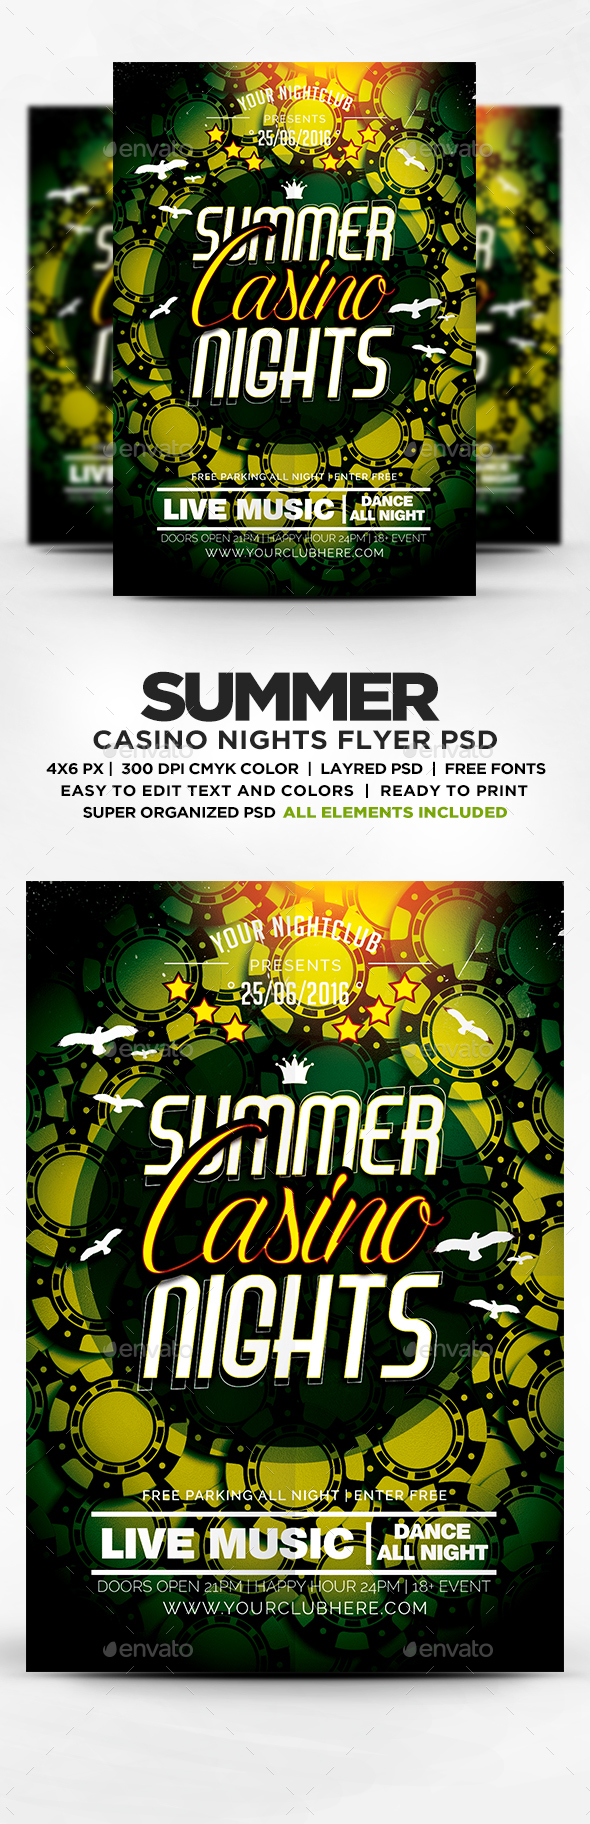 Casino Nights Flyer Template PSD